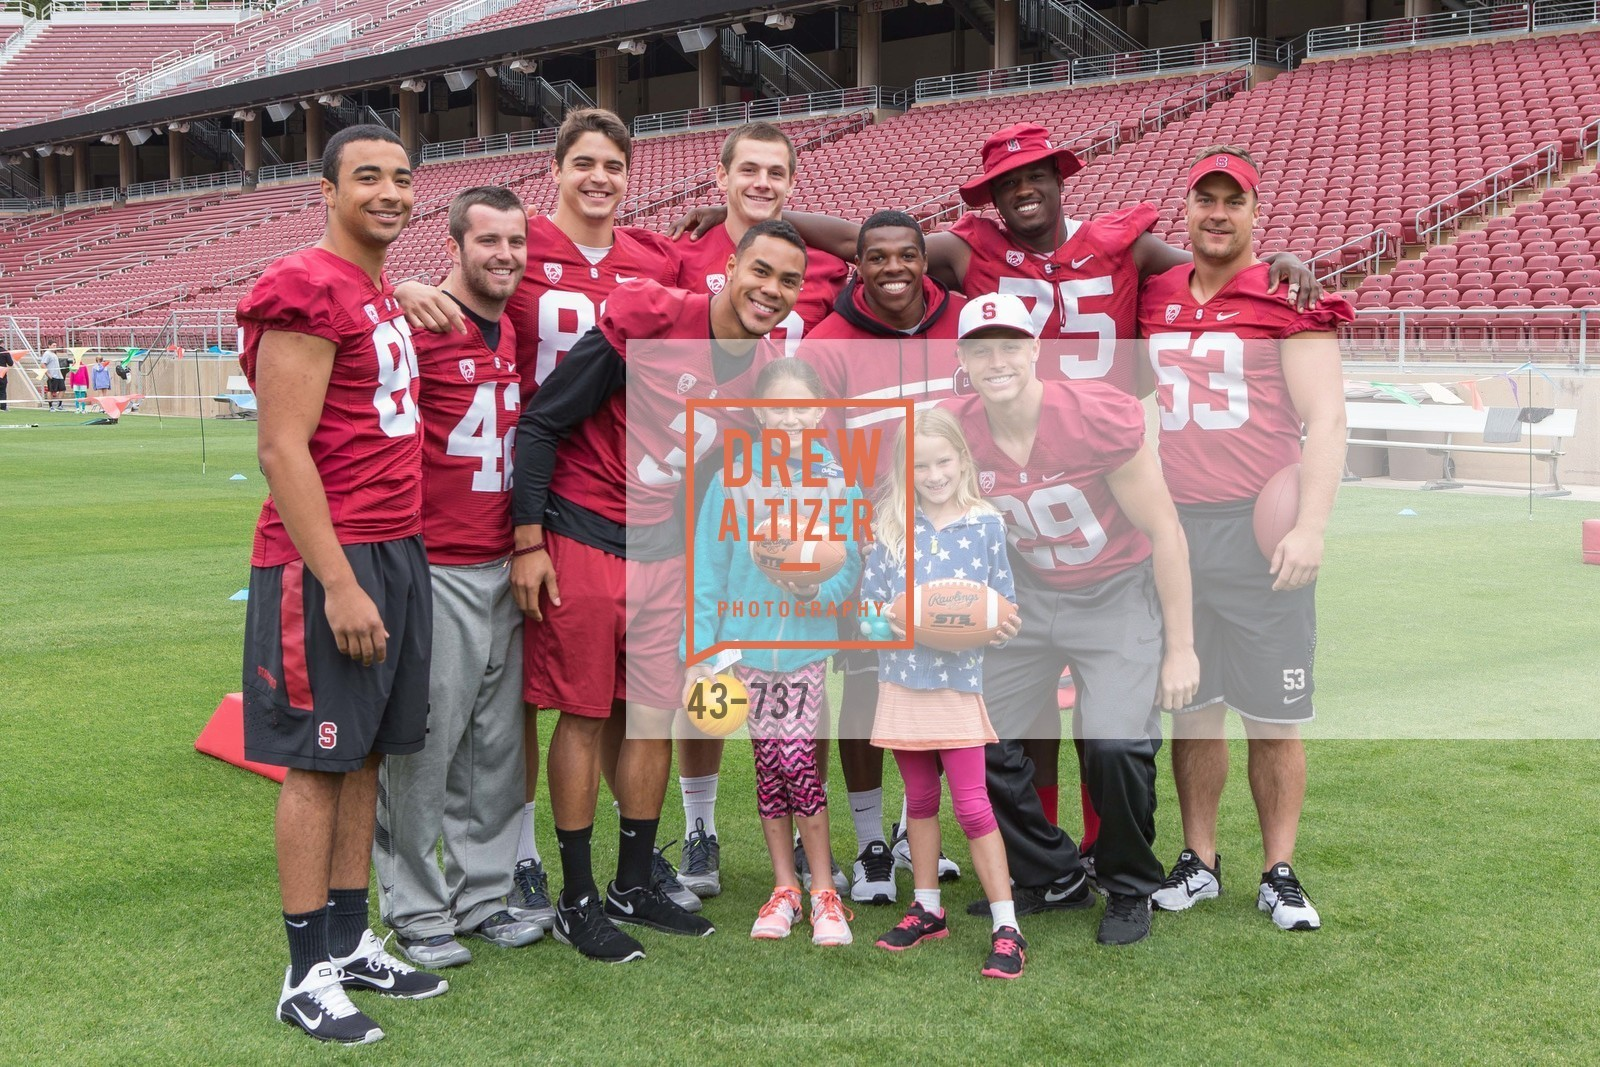 Stanford Football Team, Children's Champions, US, May 17th, 2015,Drew Altizer, Drew Altizer Photography, full-service agency, private events, San Francisco photographer, photographer california